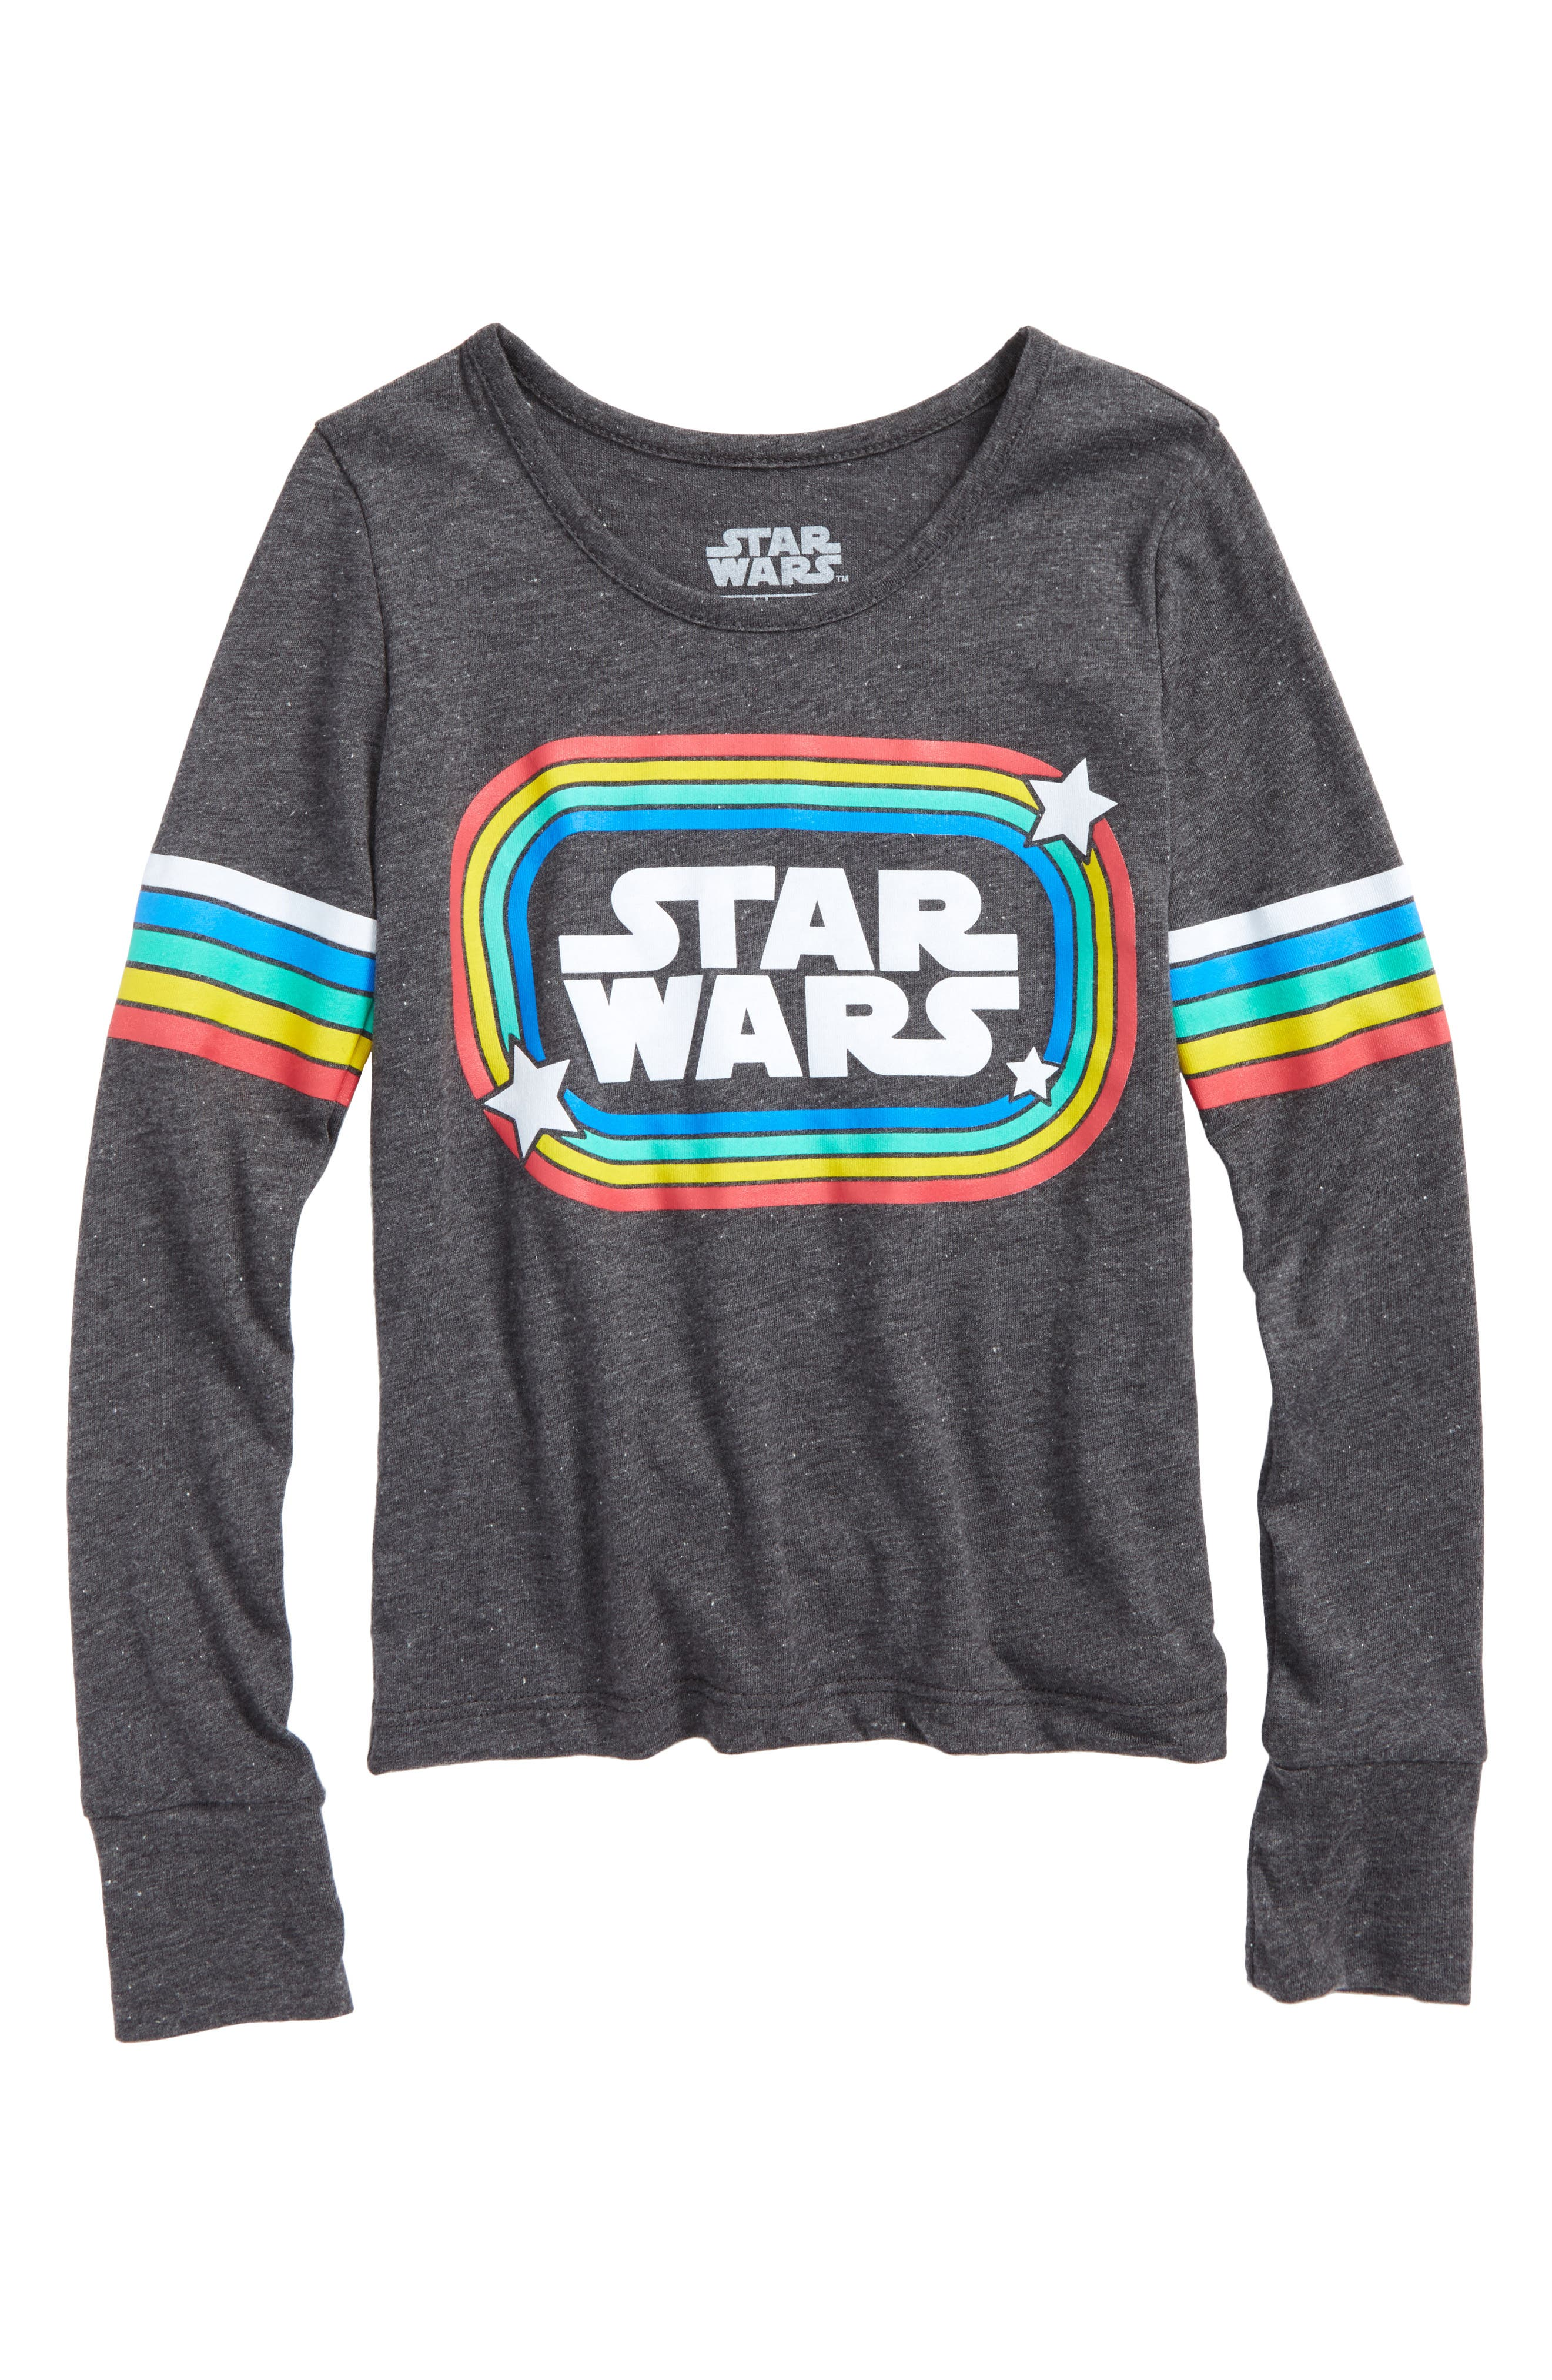 Star Wars<sup>™</sup> Retro Rainbow Graphic Tee,                         Main,                         color, Dark Charcoal